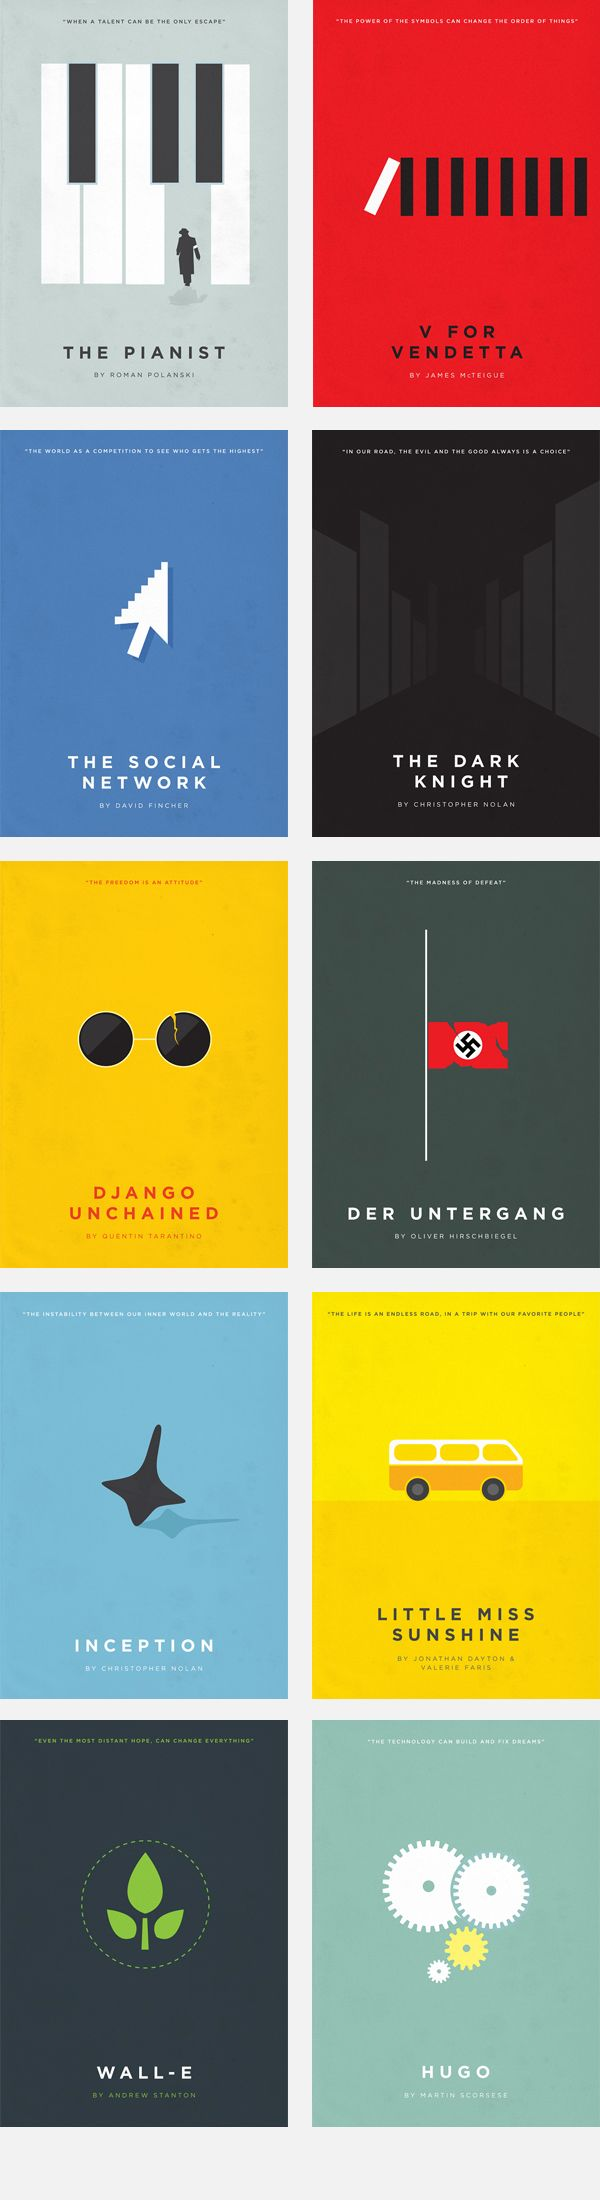 Minimalist Movie Posters Vol. II by Eder Rengifo, via Behance